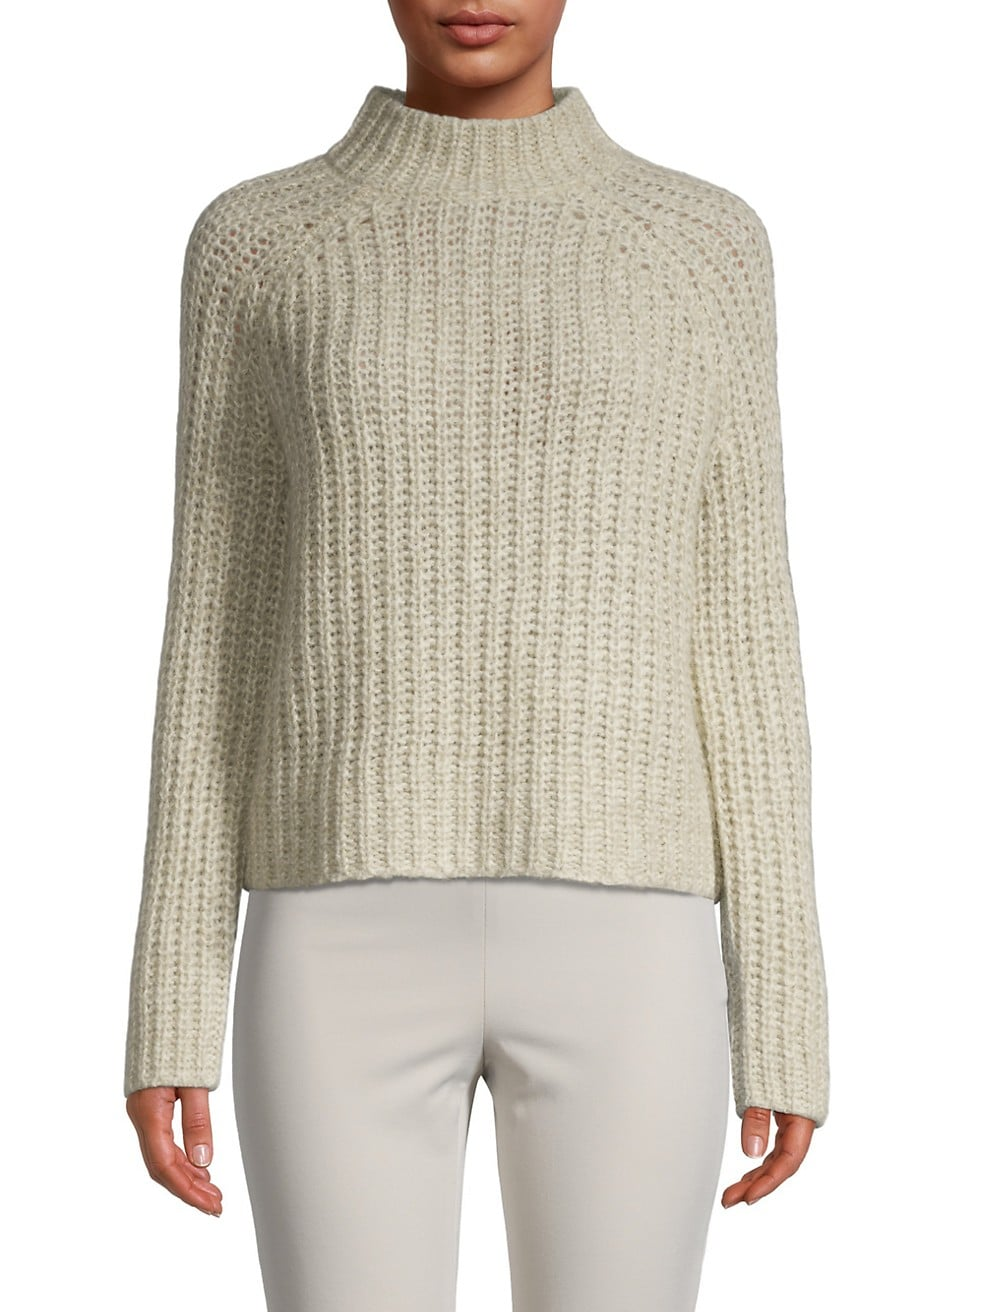 Saks Off 5th: Women's Fall Favorites Up to 76% off